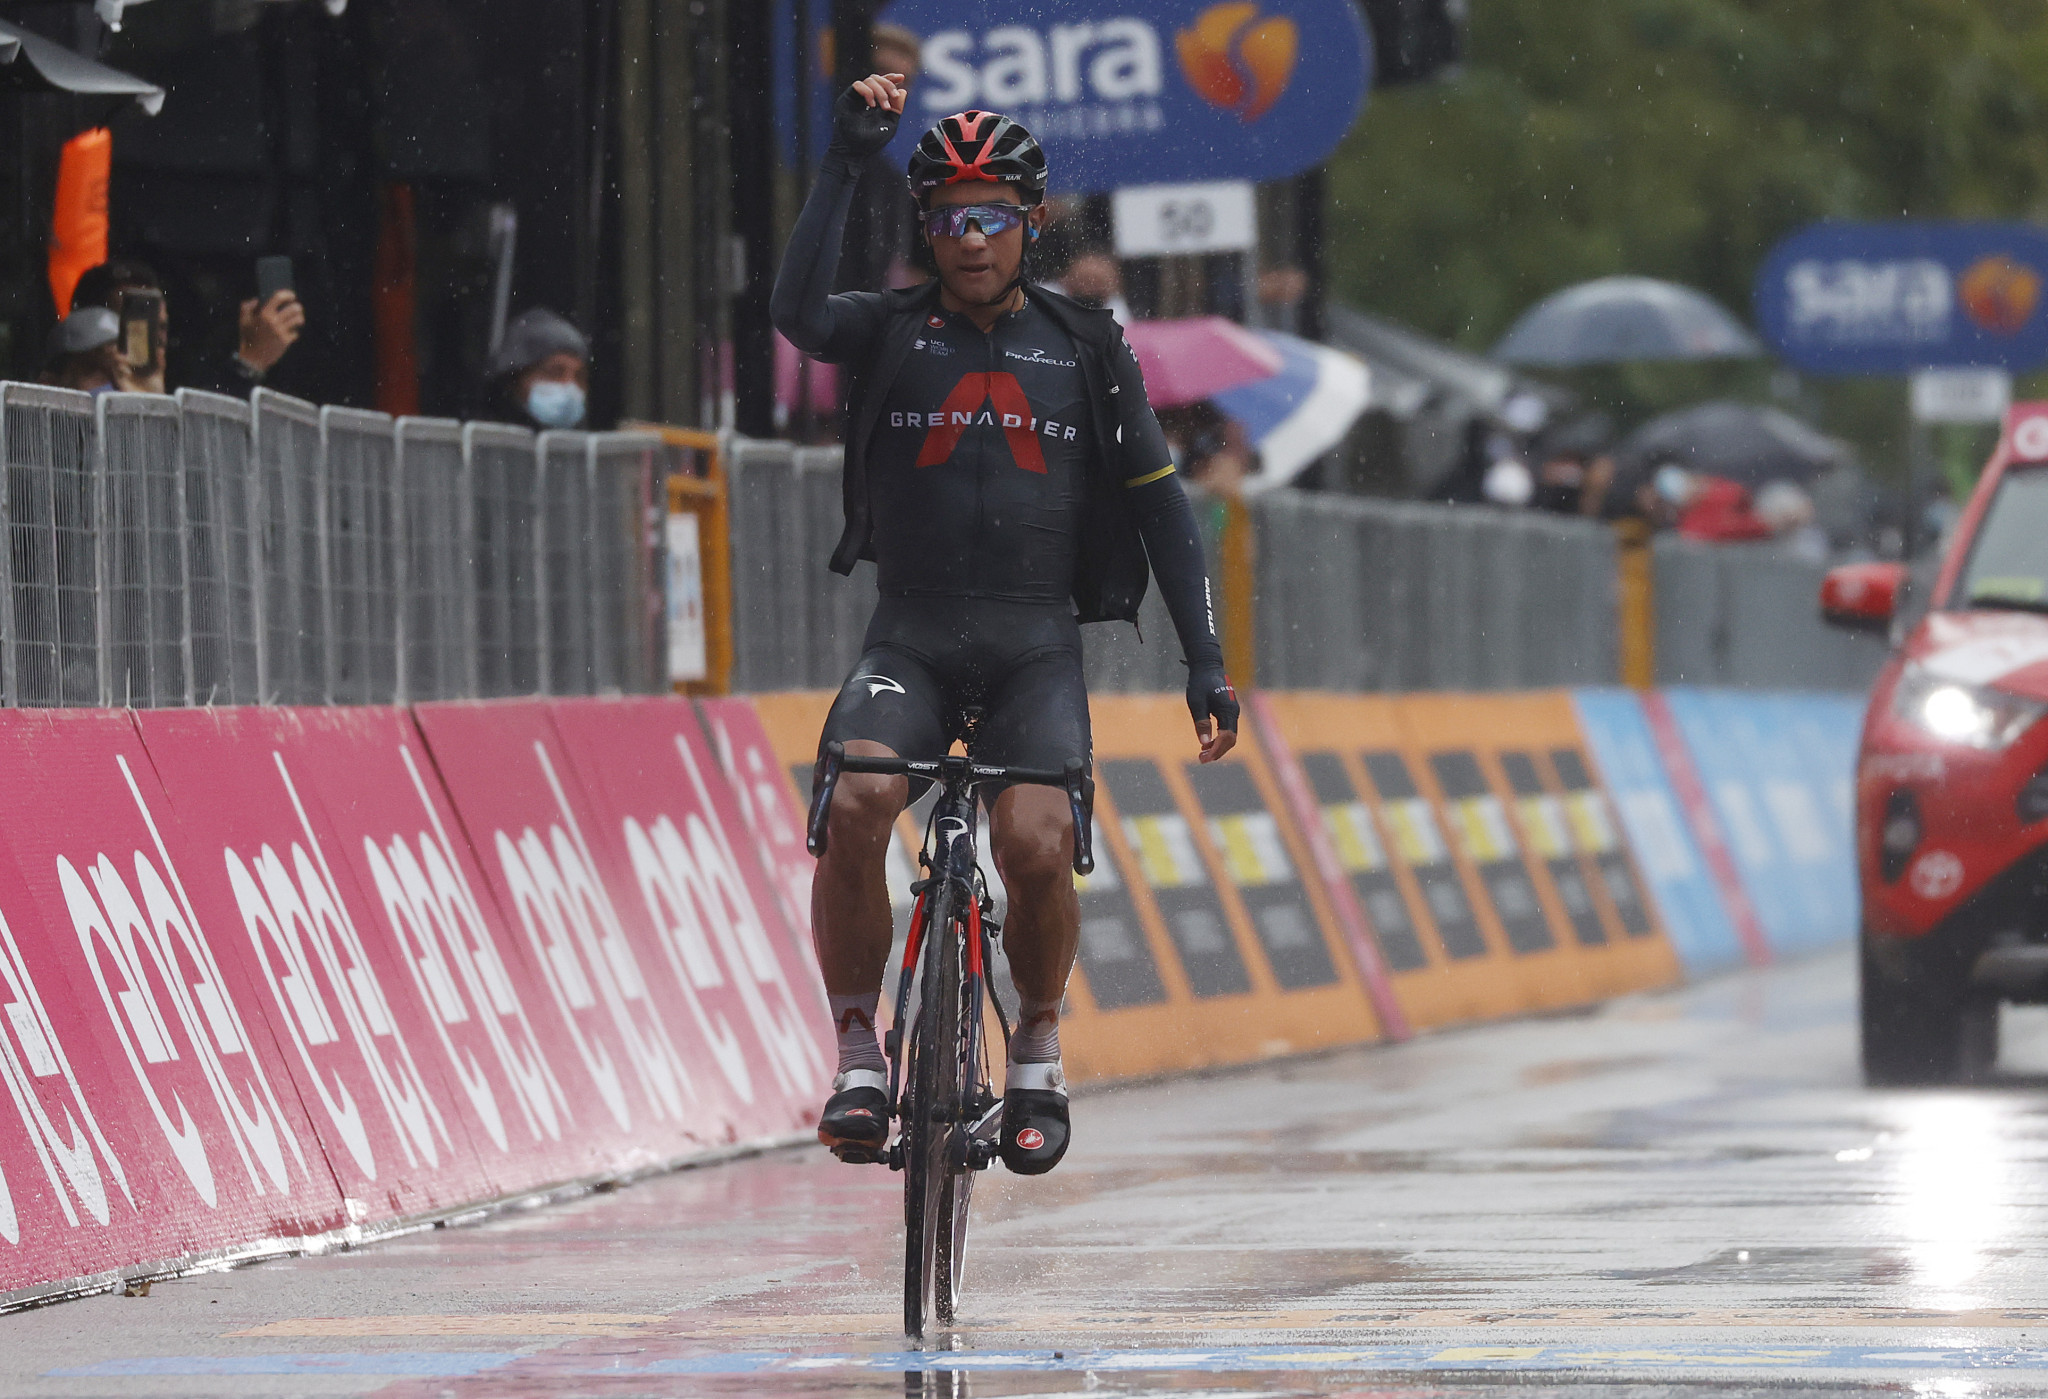 Narváez wins stage 12 as EF Pro Cycling suggestion to halt Giro turned down